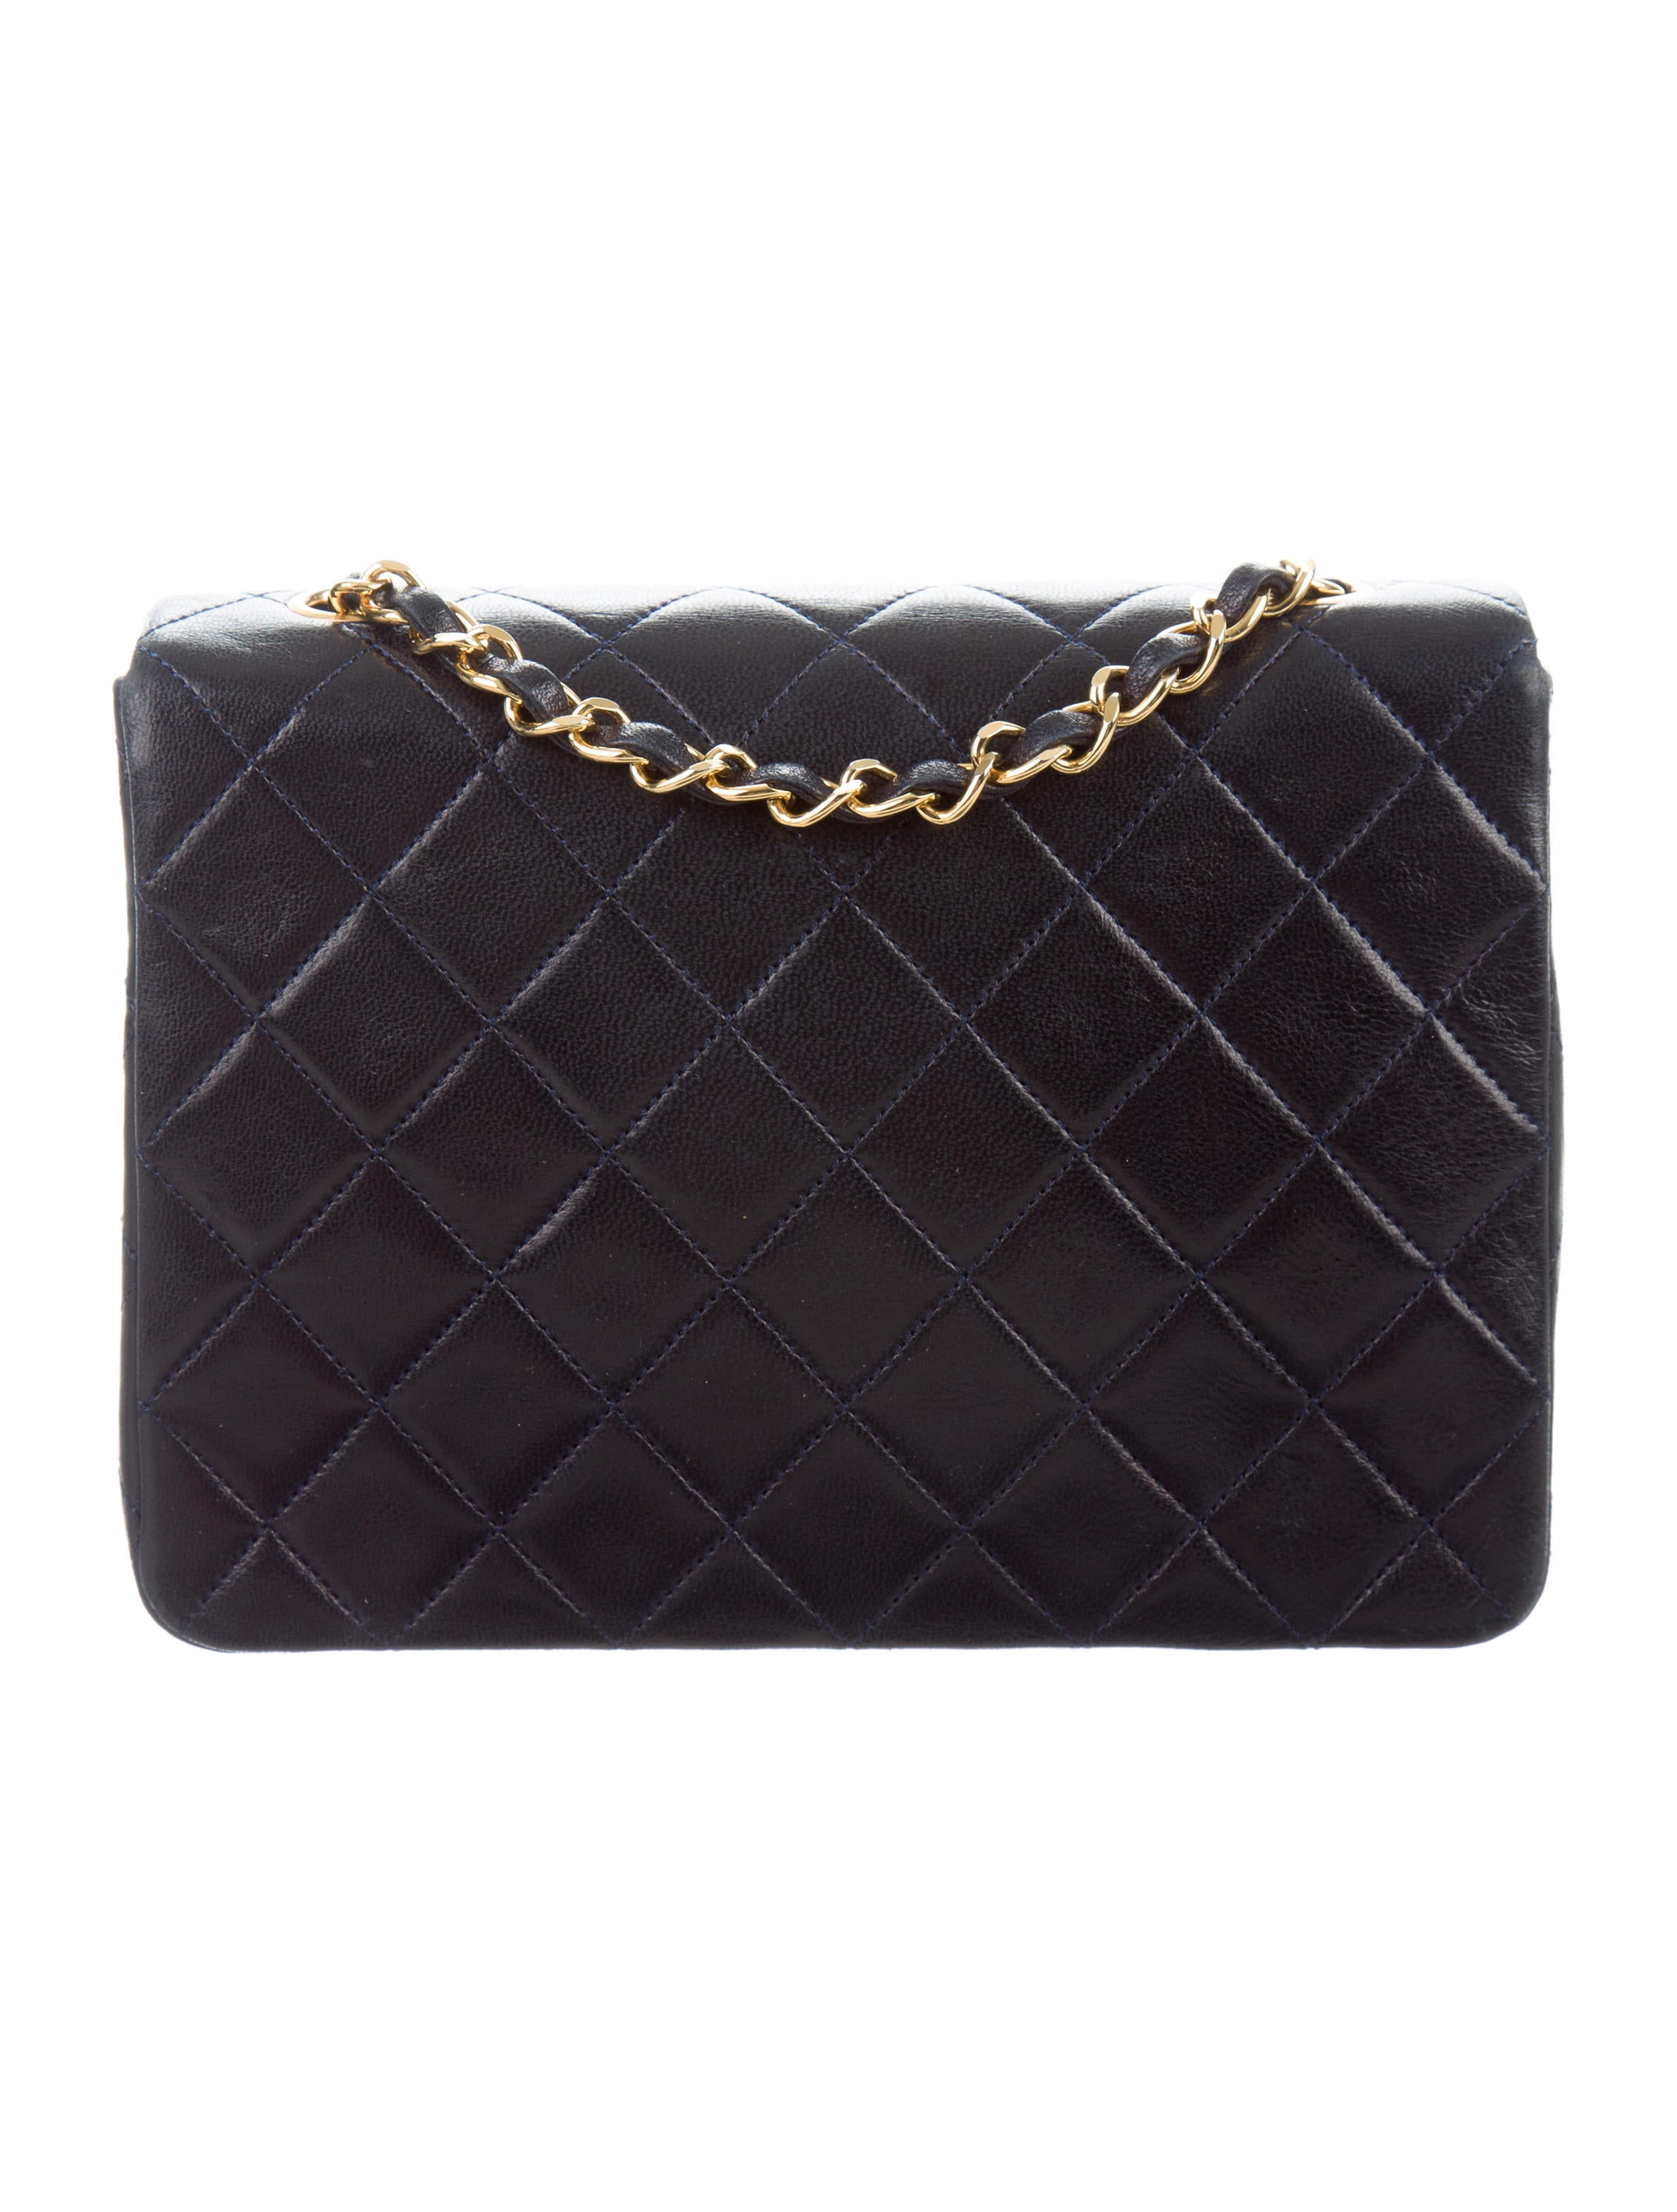 bbe0f2adf15d Mini Flap Bag Chanel Size | Stanford Center for Opportunity Policy ...